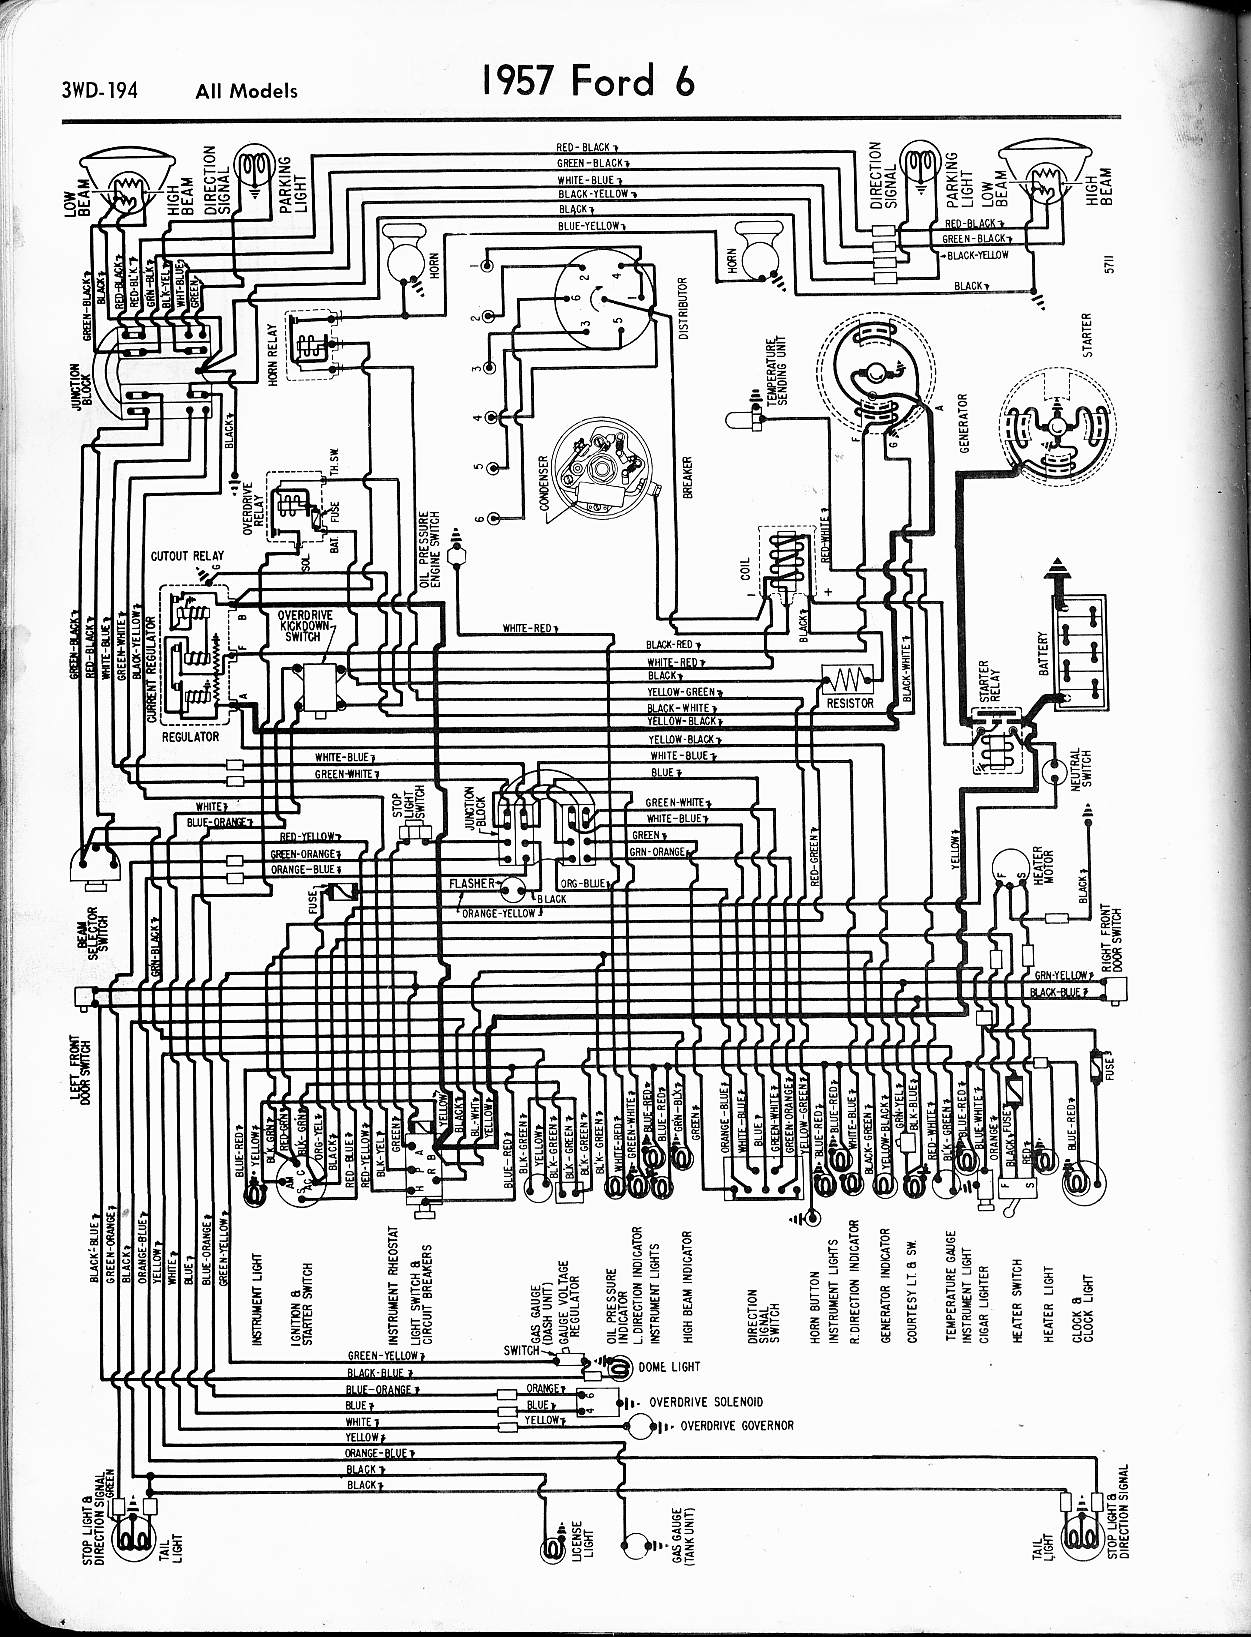 1973 Ford Capri Wiring Diagram Archive Of Automotive 1985 Schematic Schemes Rh Cabanaselgolfo Com